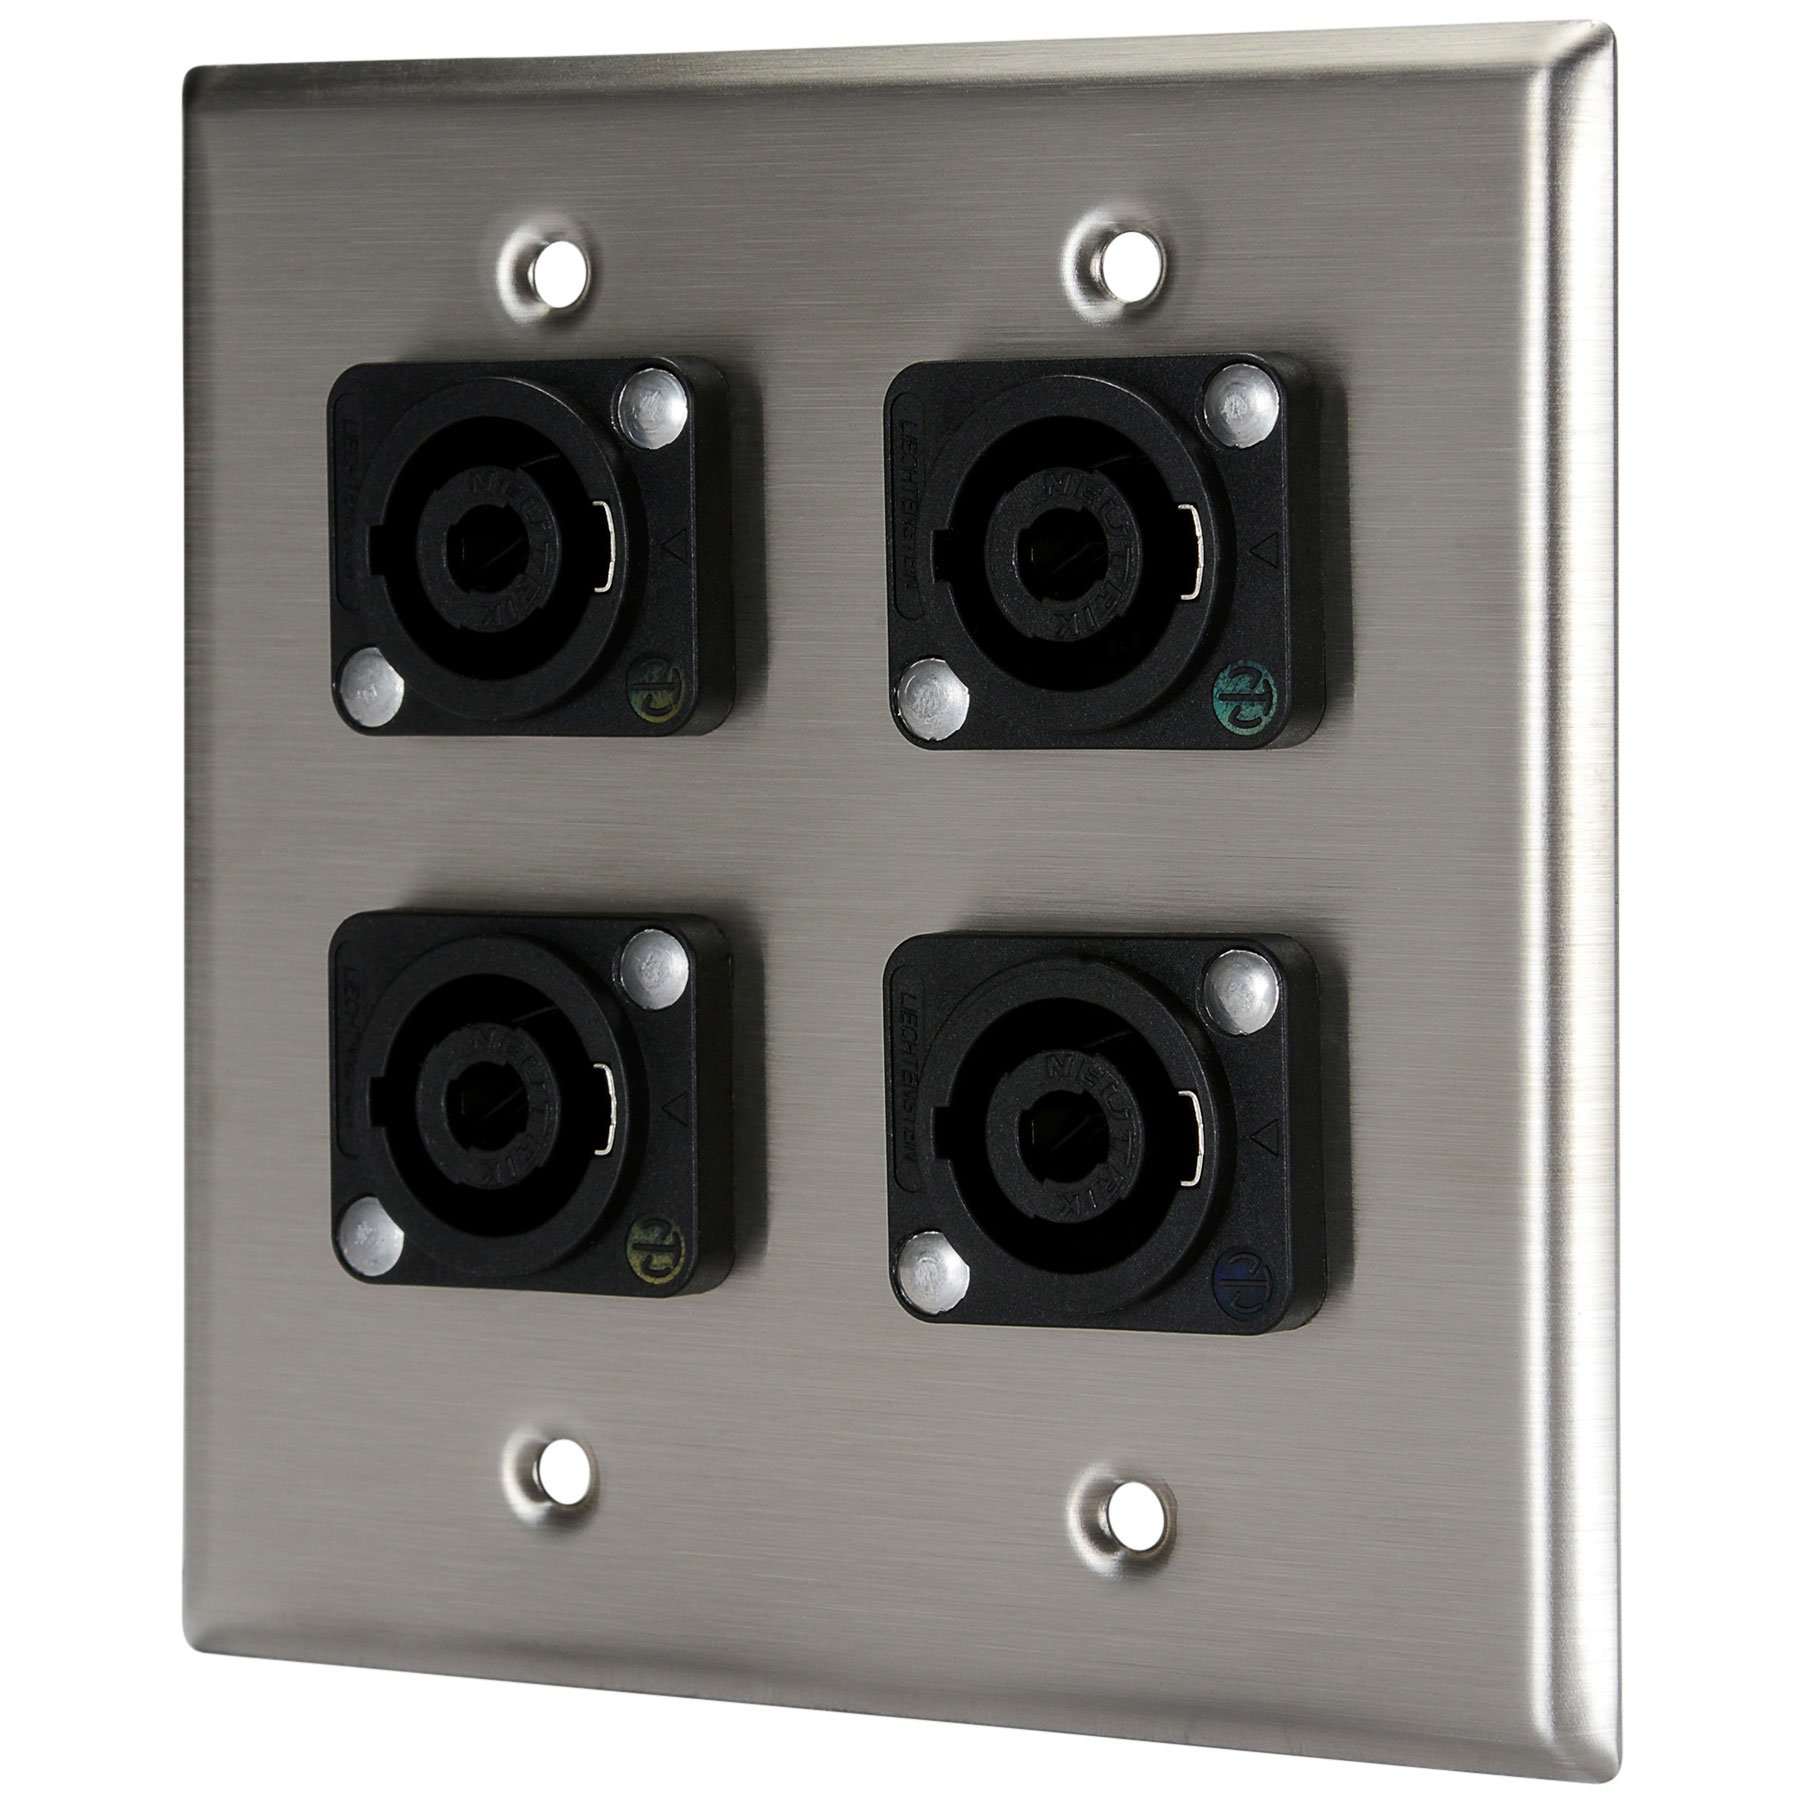 Pro Co WP2033 (4) Speakon Stainless Steel Metal Wallplate Dual Gang